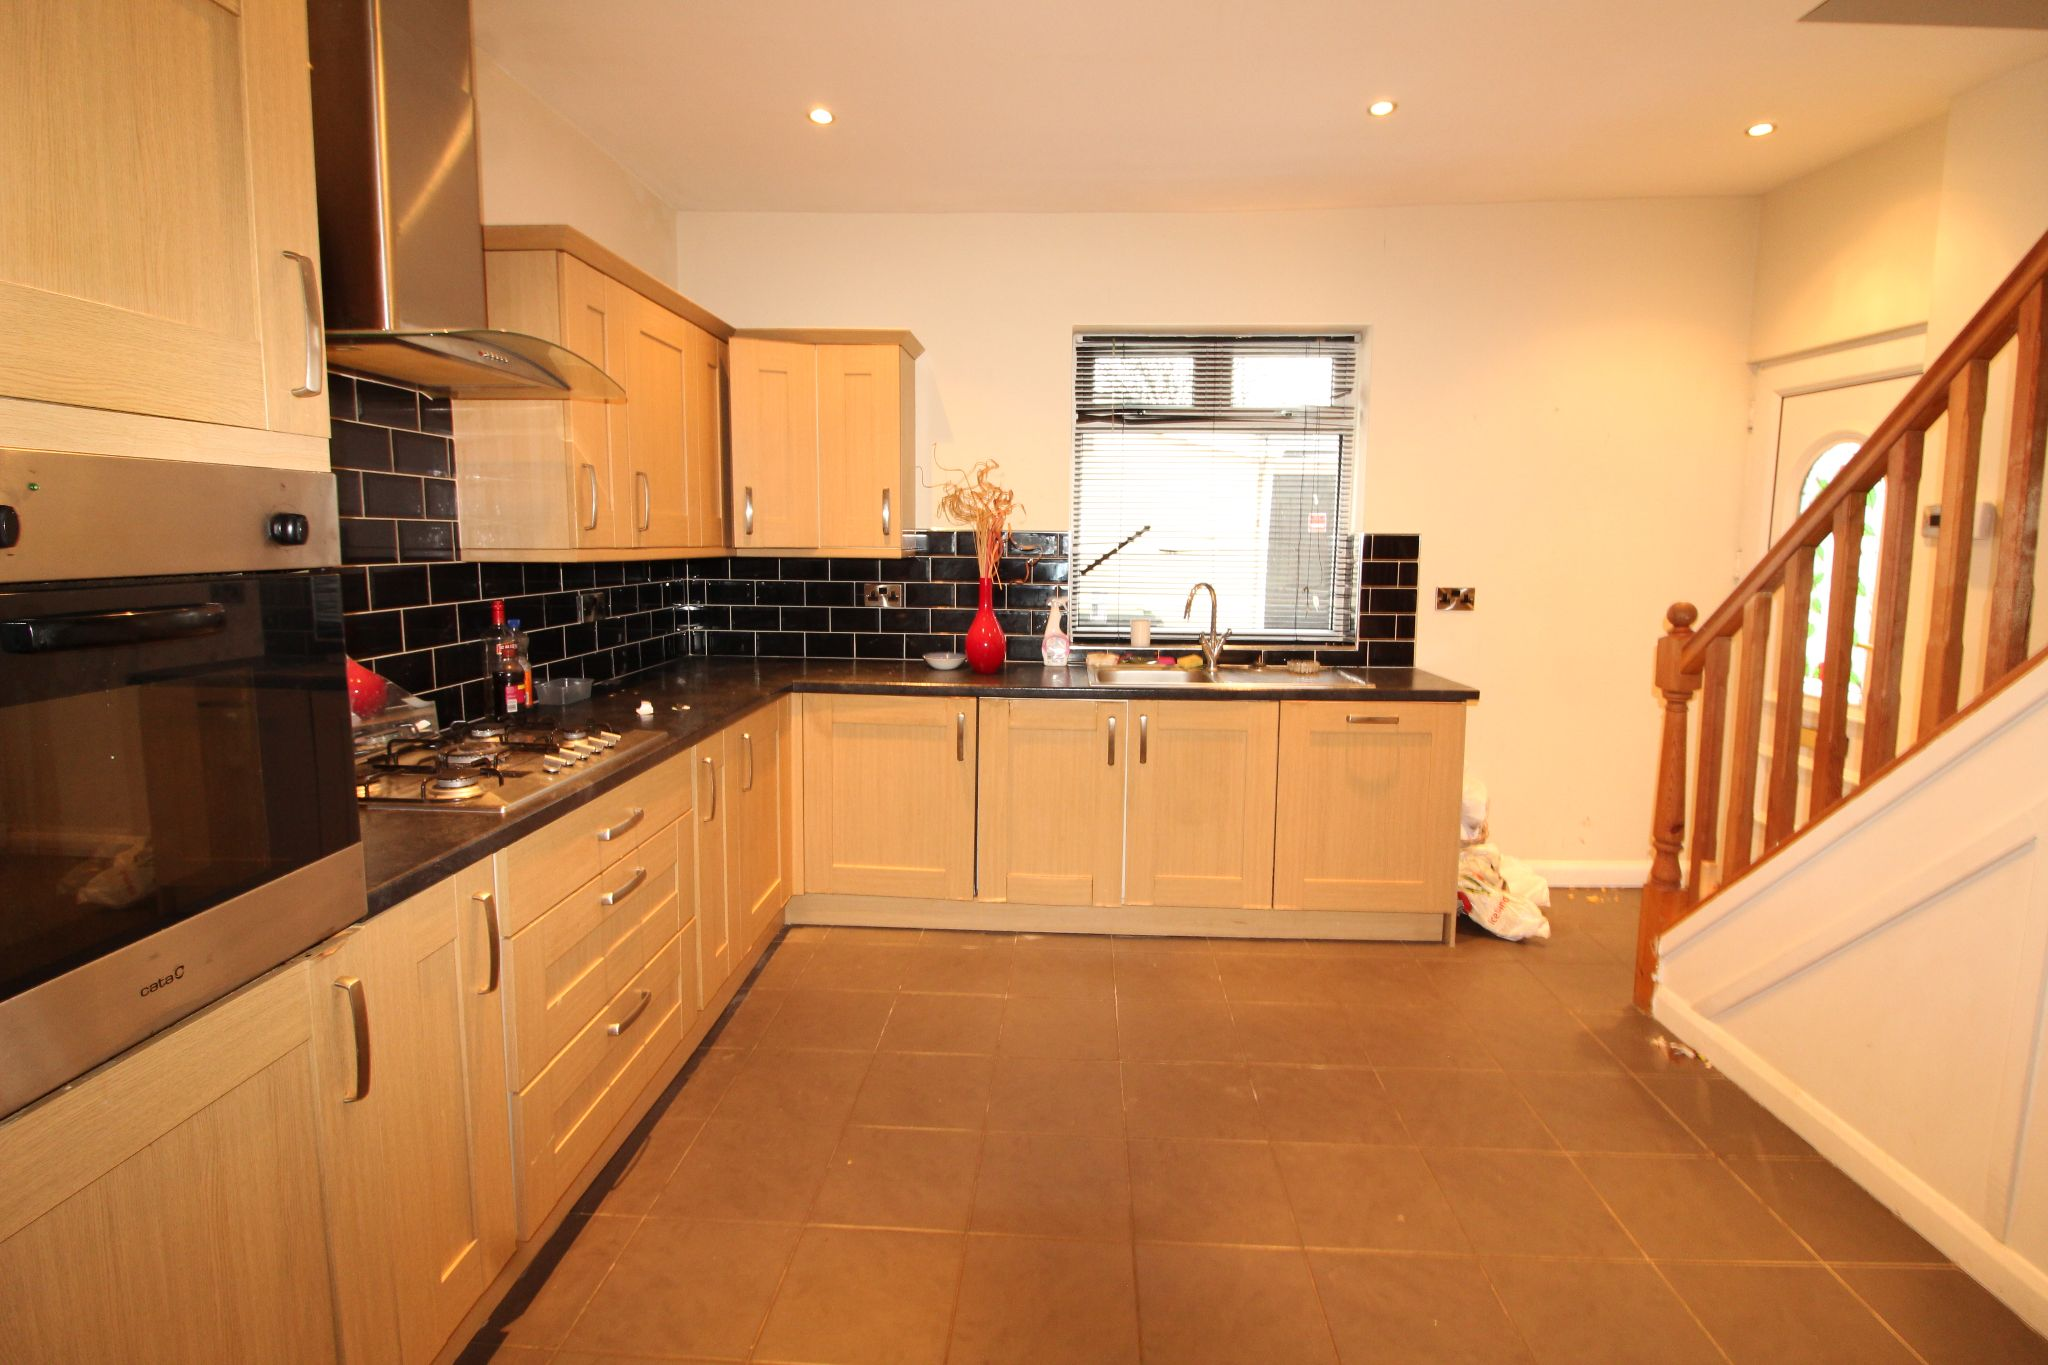 2 bedroom mid terraced house Let Agreed in Durham - Photograph 4.